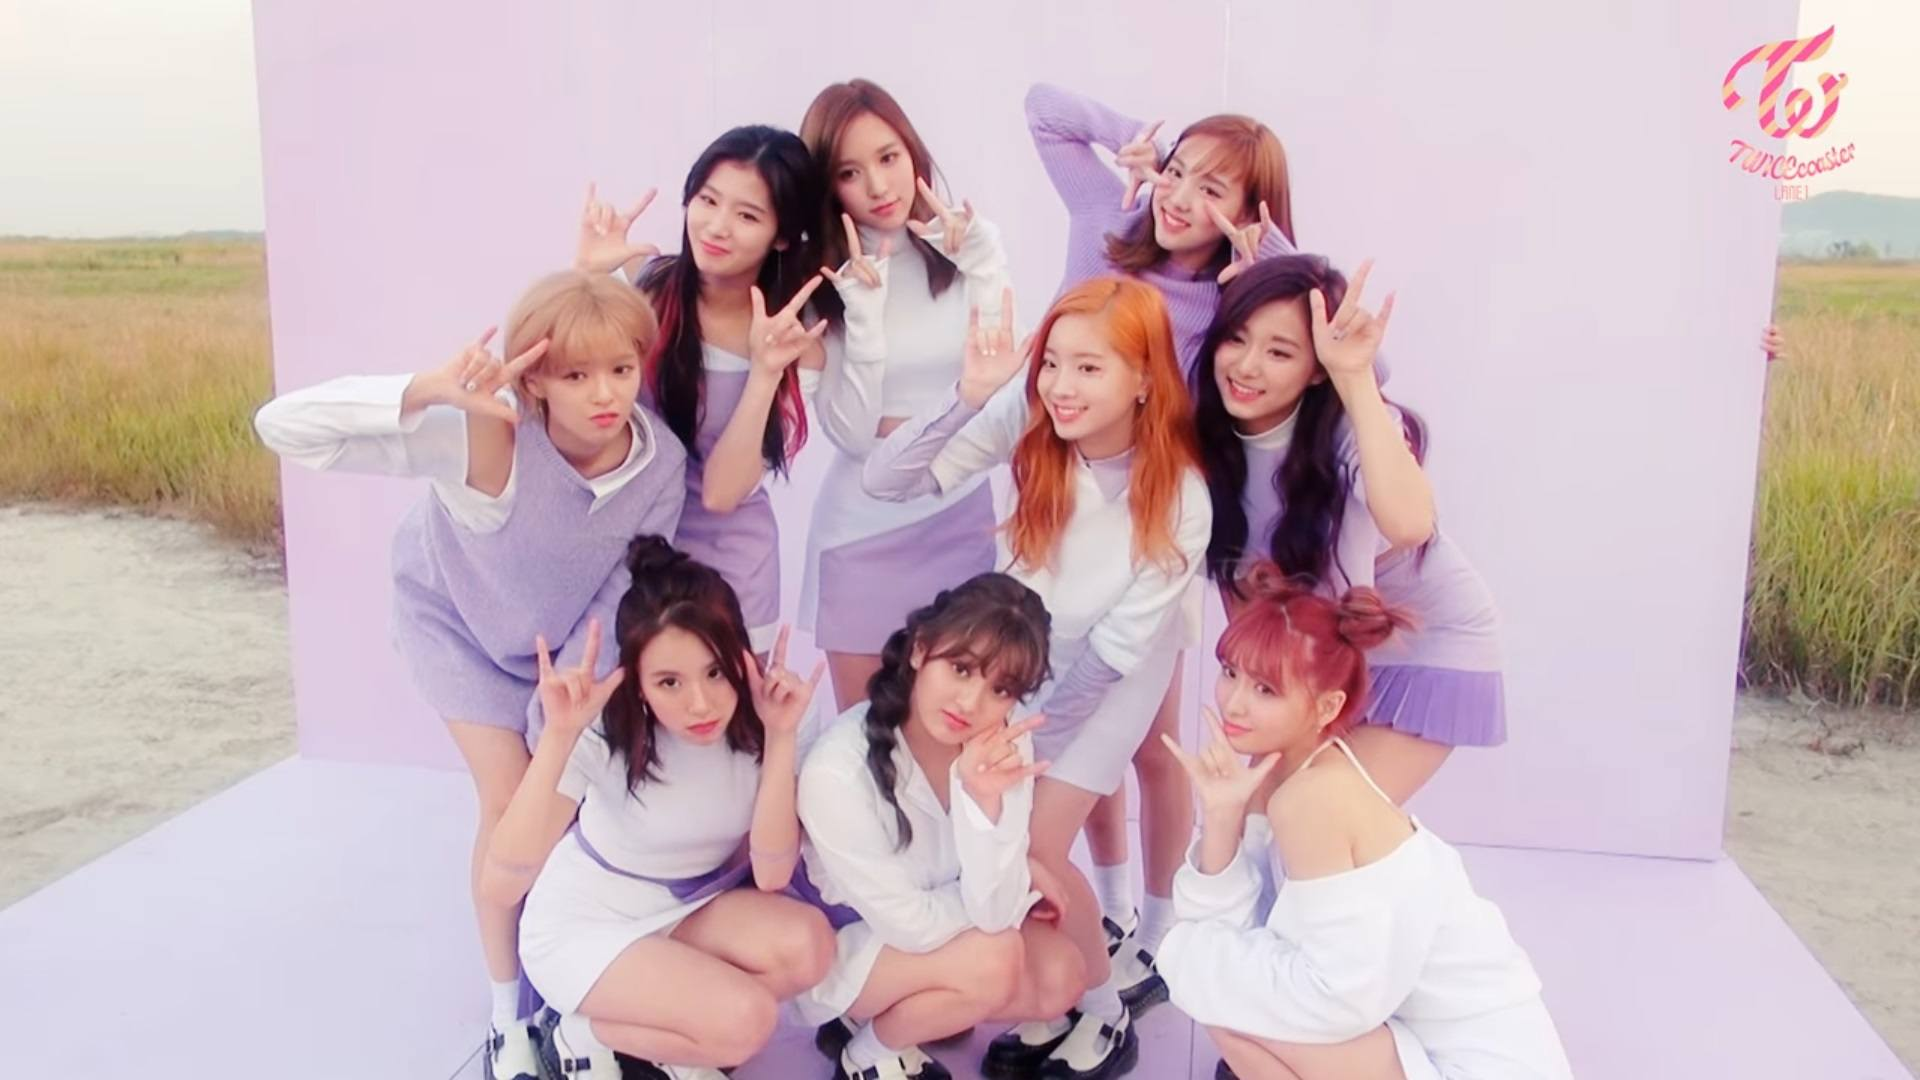 The Girl Next Door Wallpaper Koreaboo Here S What Fans Can Expect From Twice Gugudan